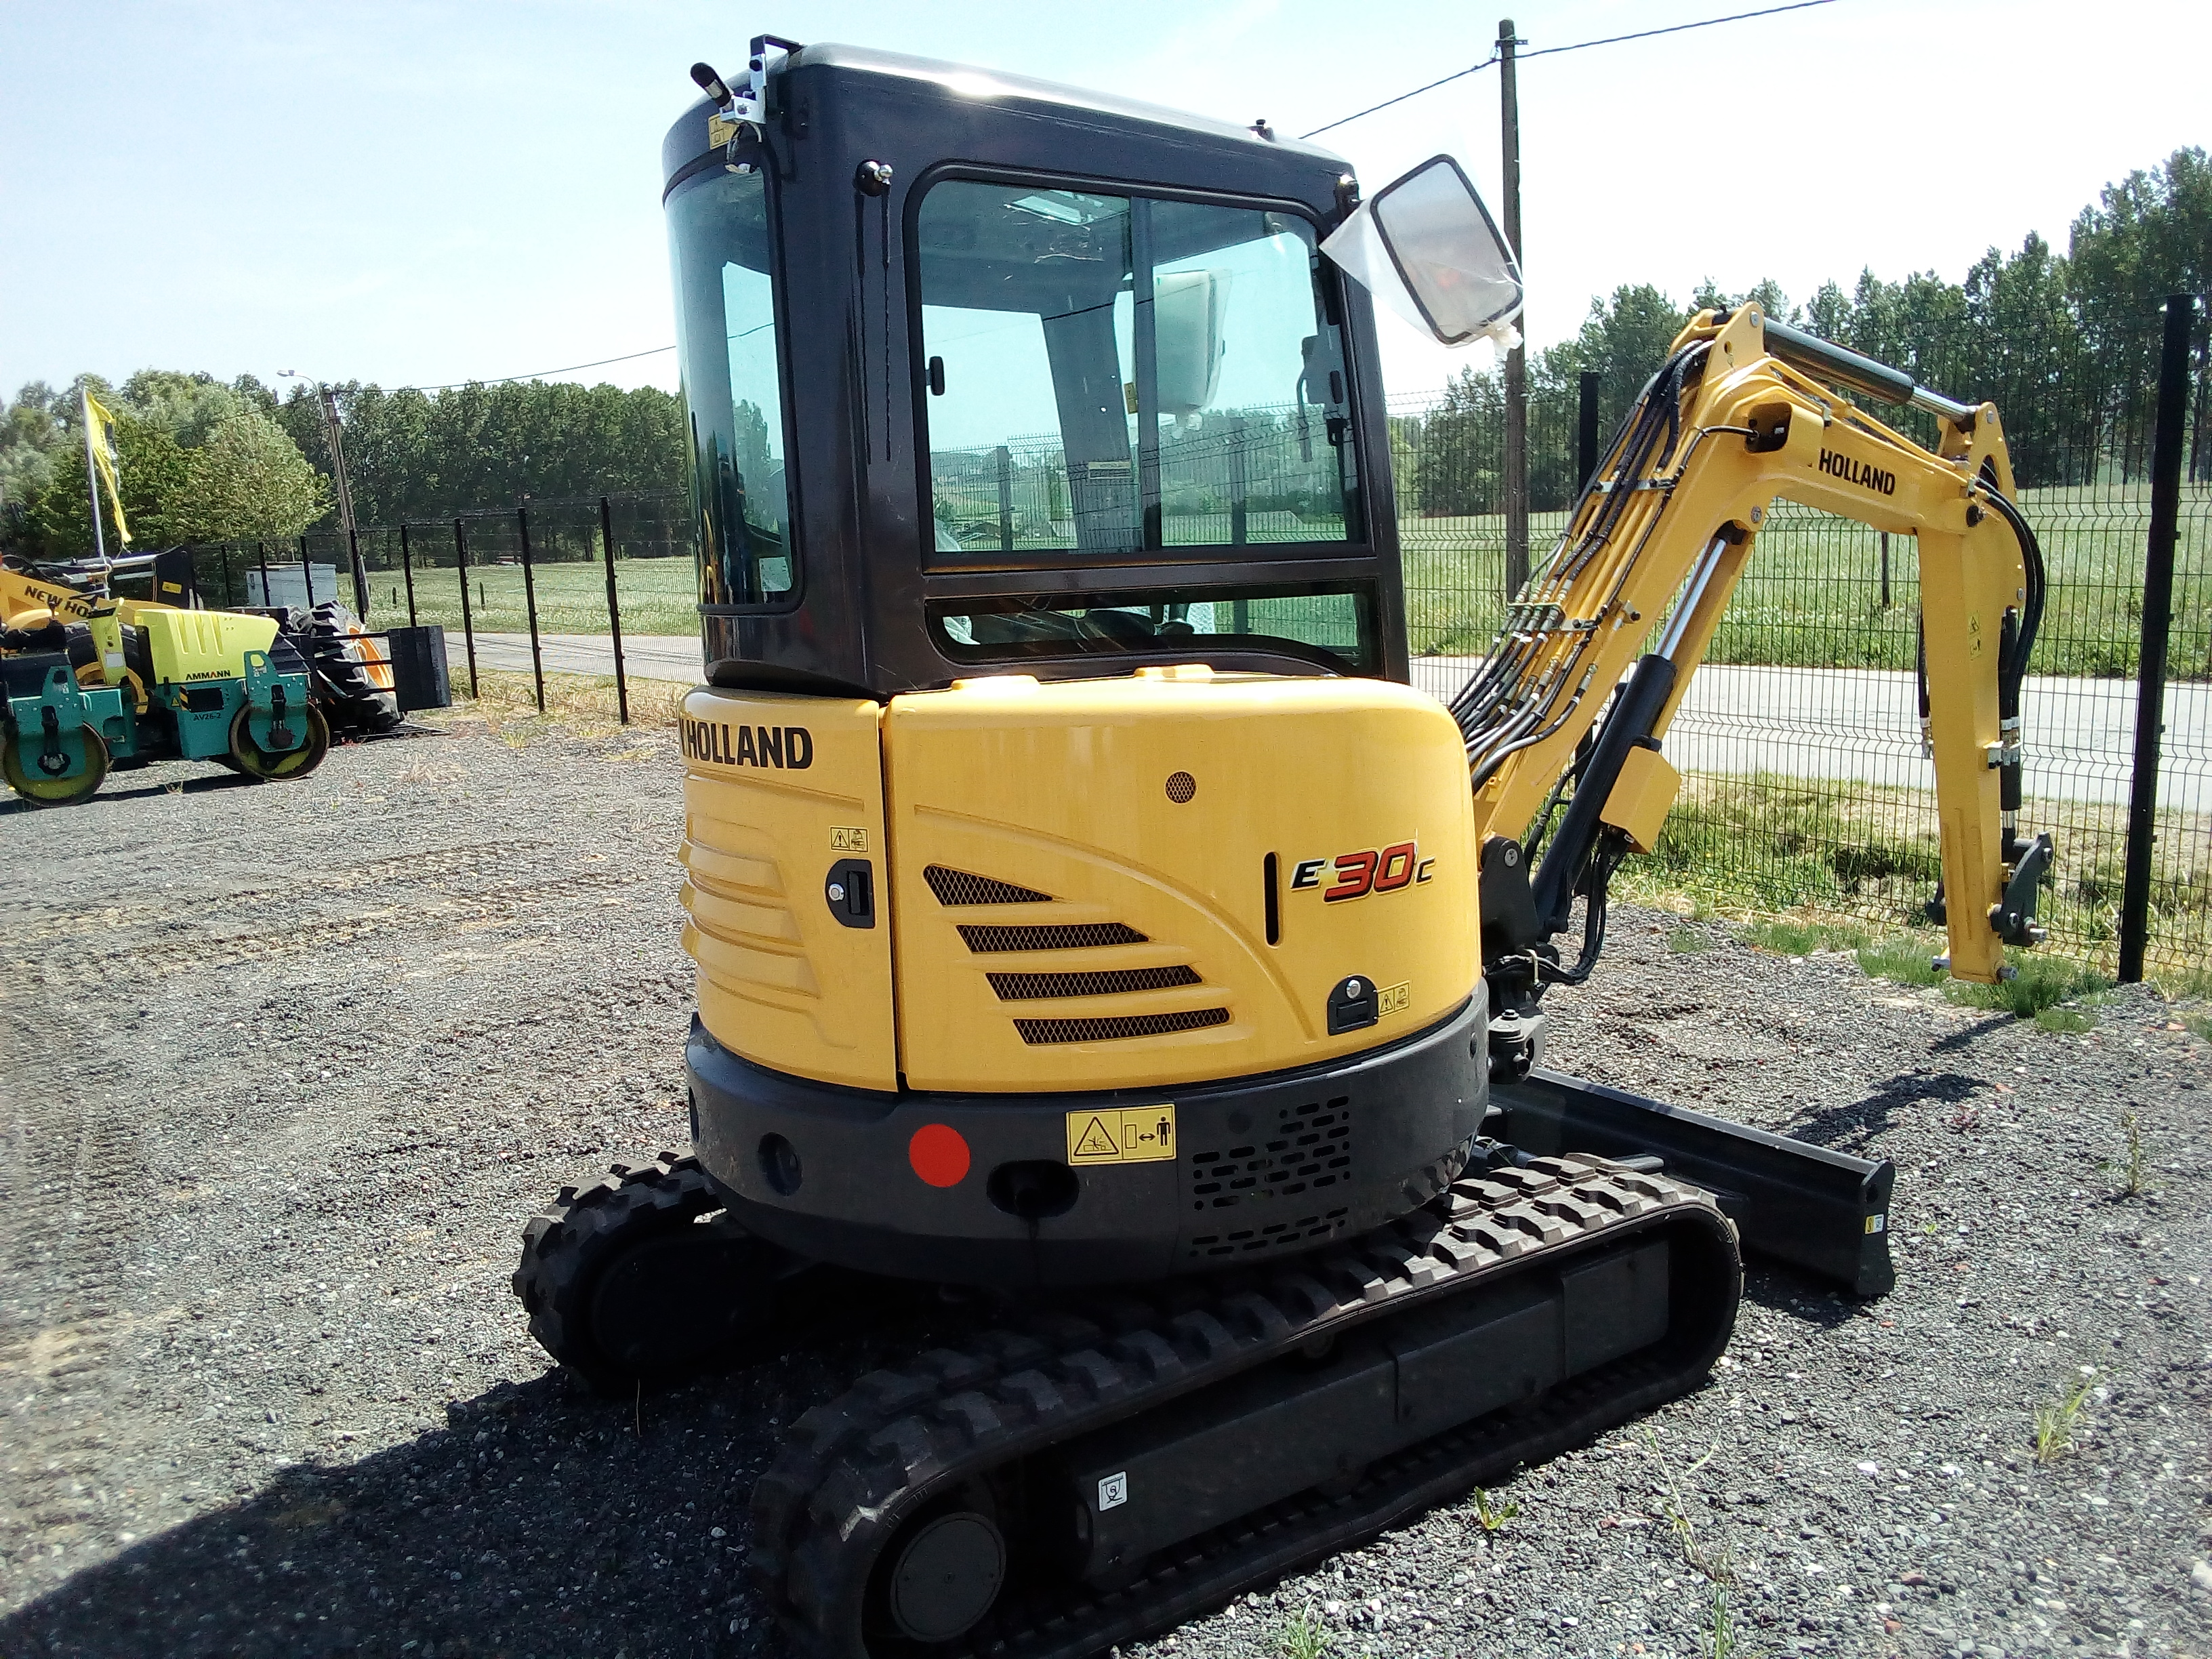 New Holland E 30 C